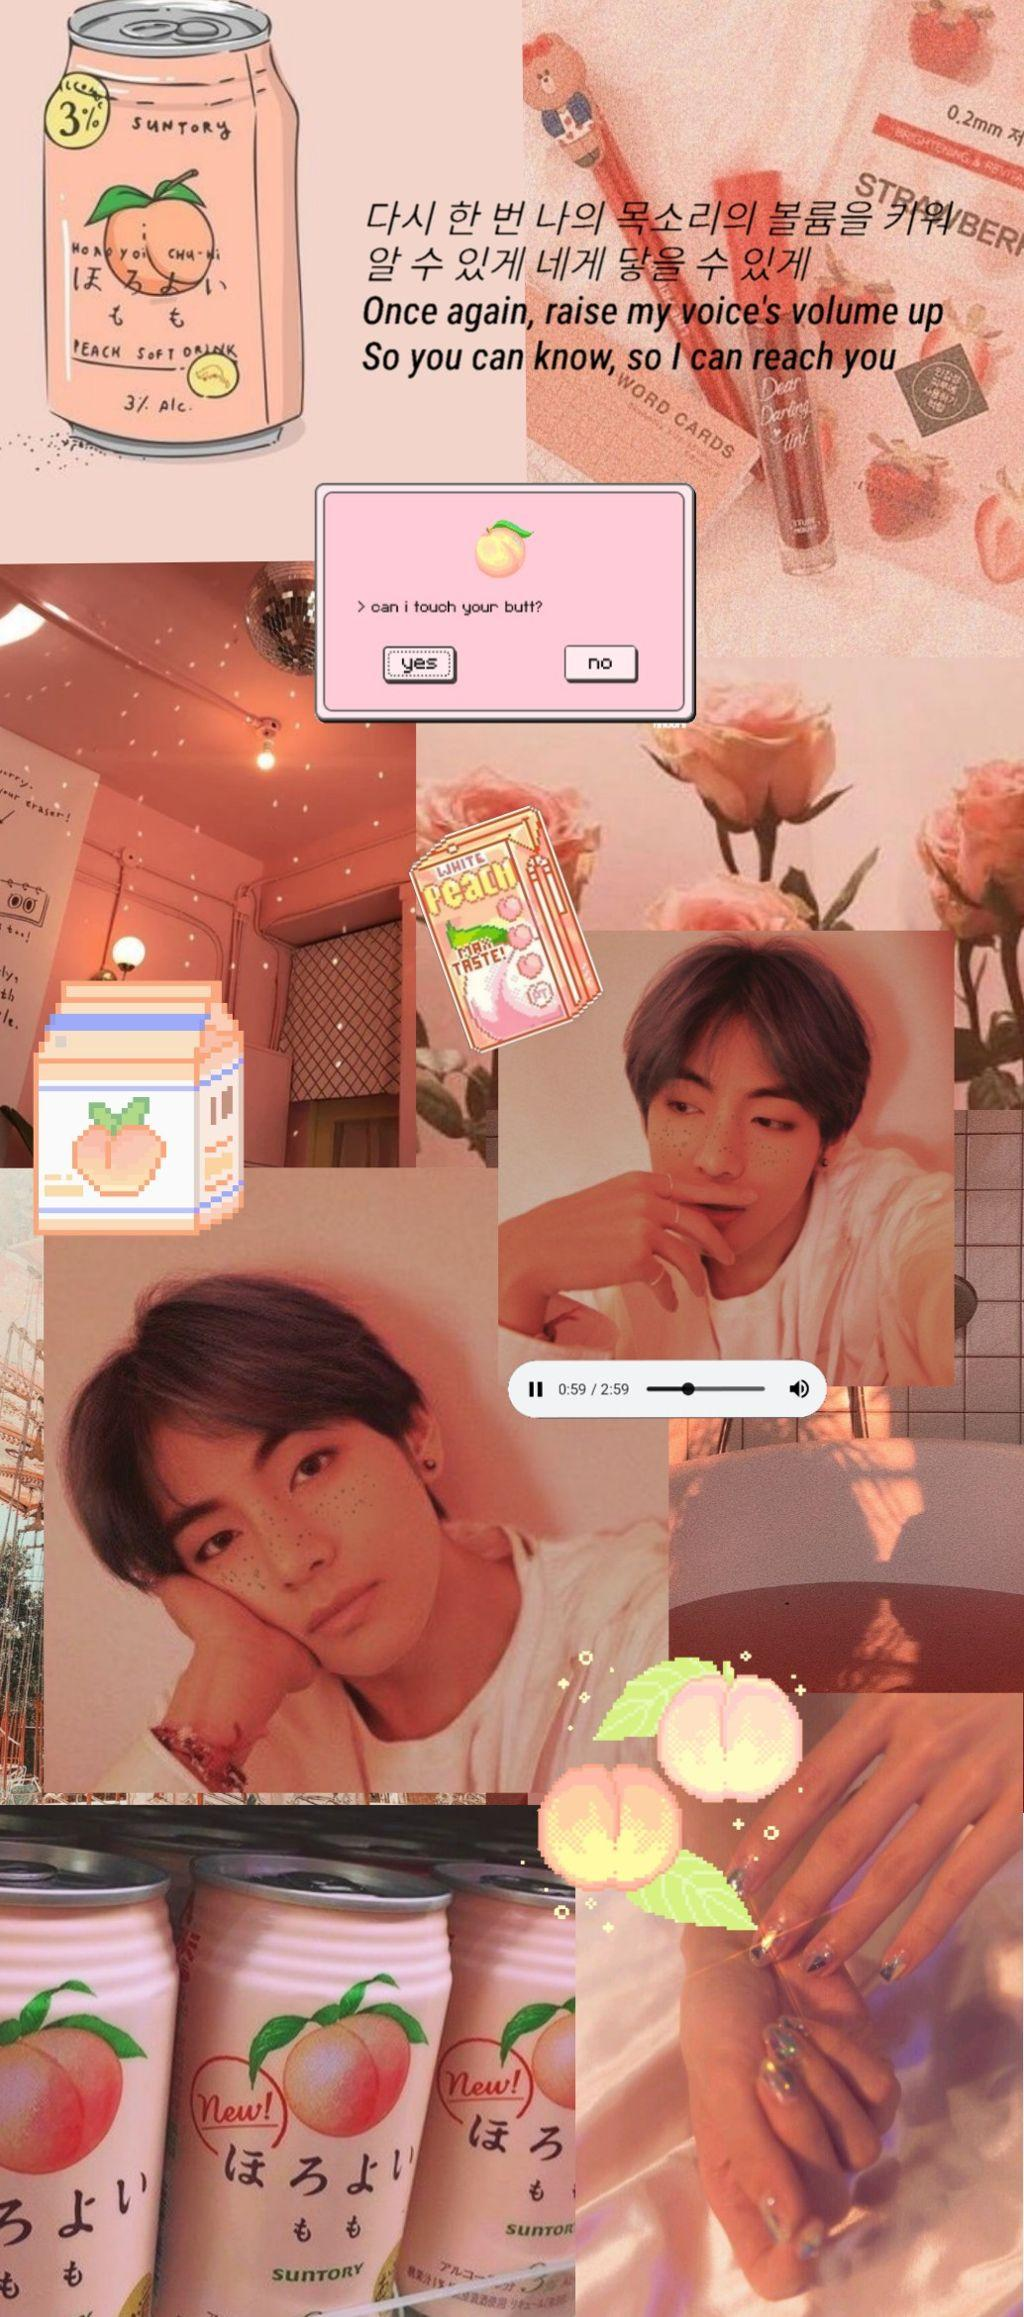 Taehyung Aesthetic Wallpapers Wallpaper Cave